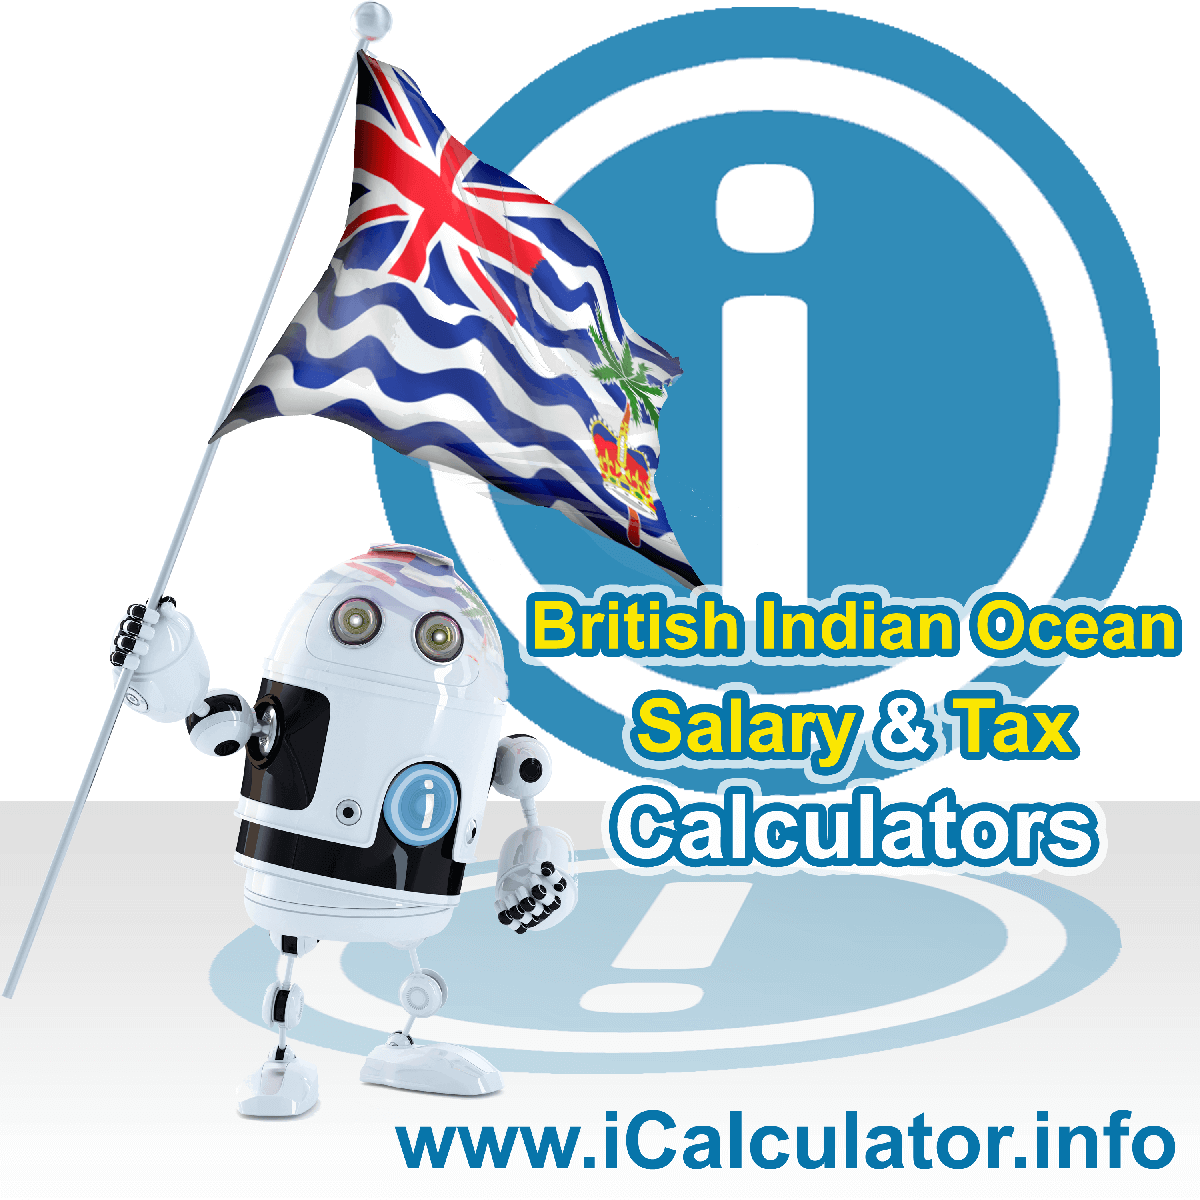 British Indian Ocean Territory Wage Calculator. This image shows the British Indian Ocean Territory flag and information relating to the tax formula for the British Indian Ocean Territory Tax Calculator